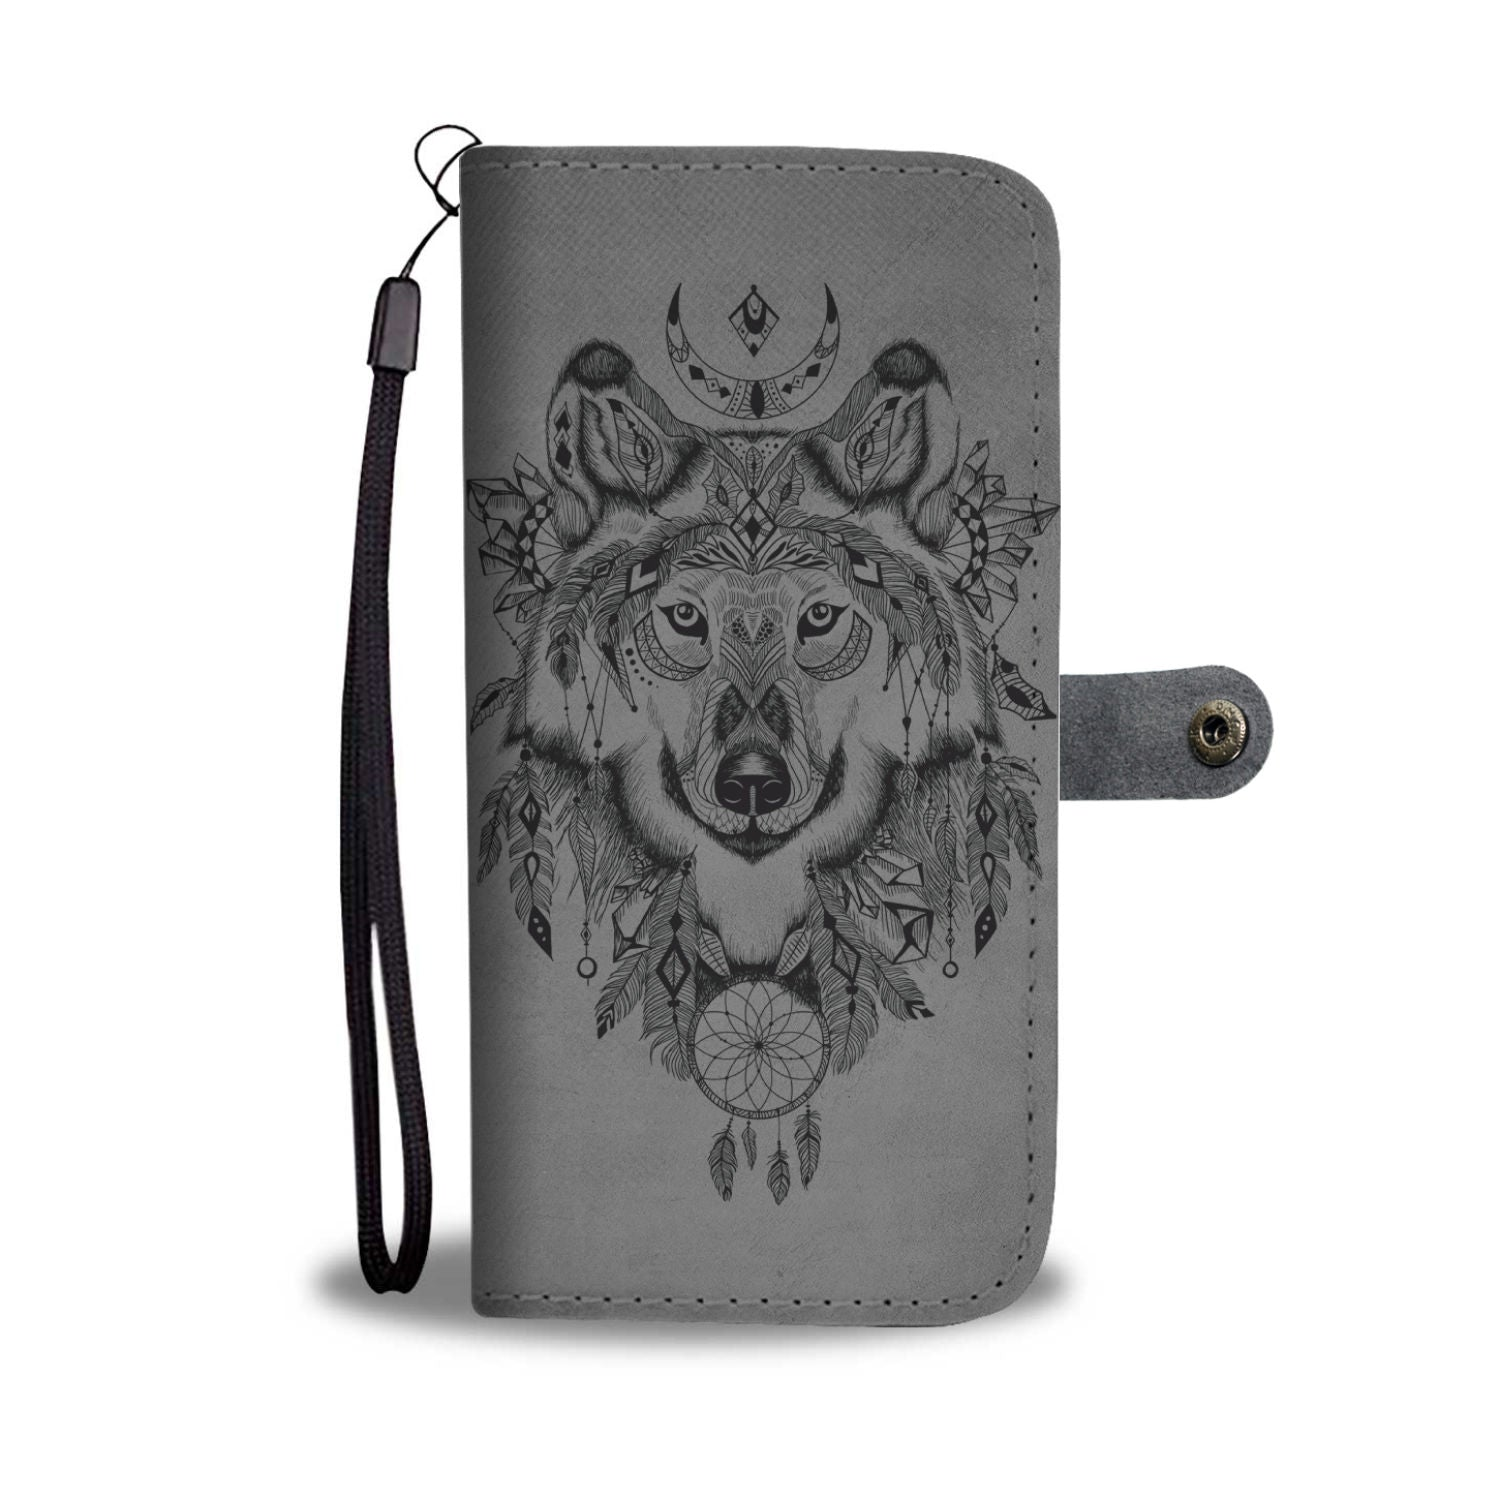 Traumfänger Wolf Geldbörsen Telefon Case - FANCY WOLF   FASHION ... 9b949c005f